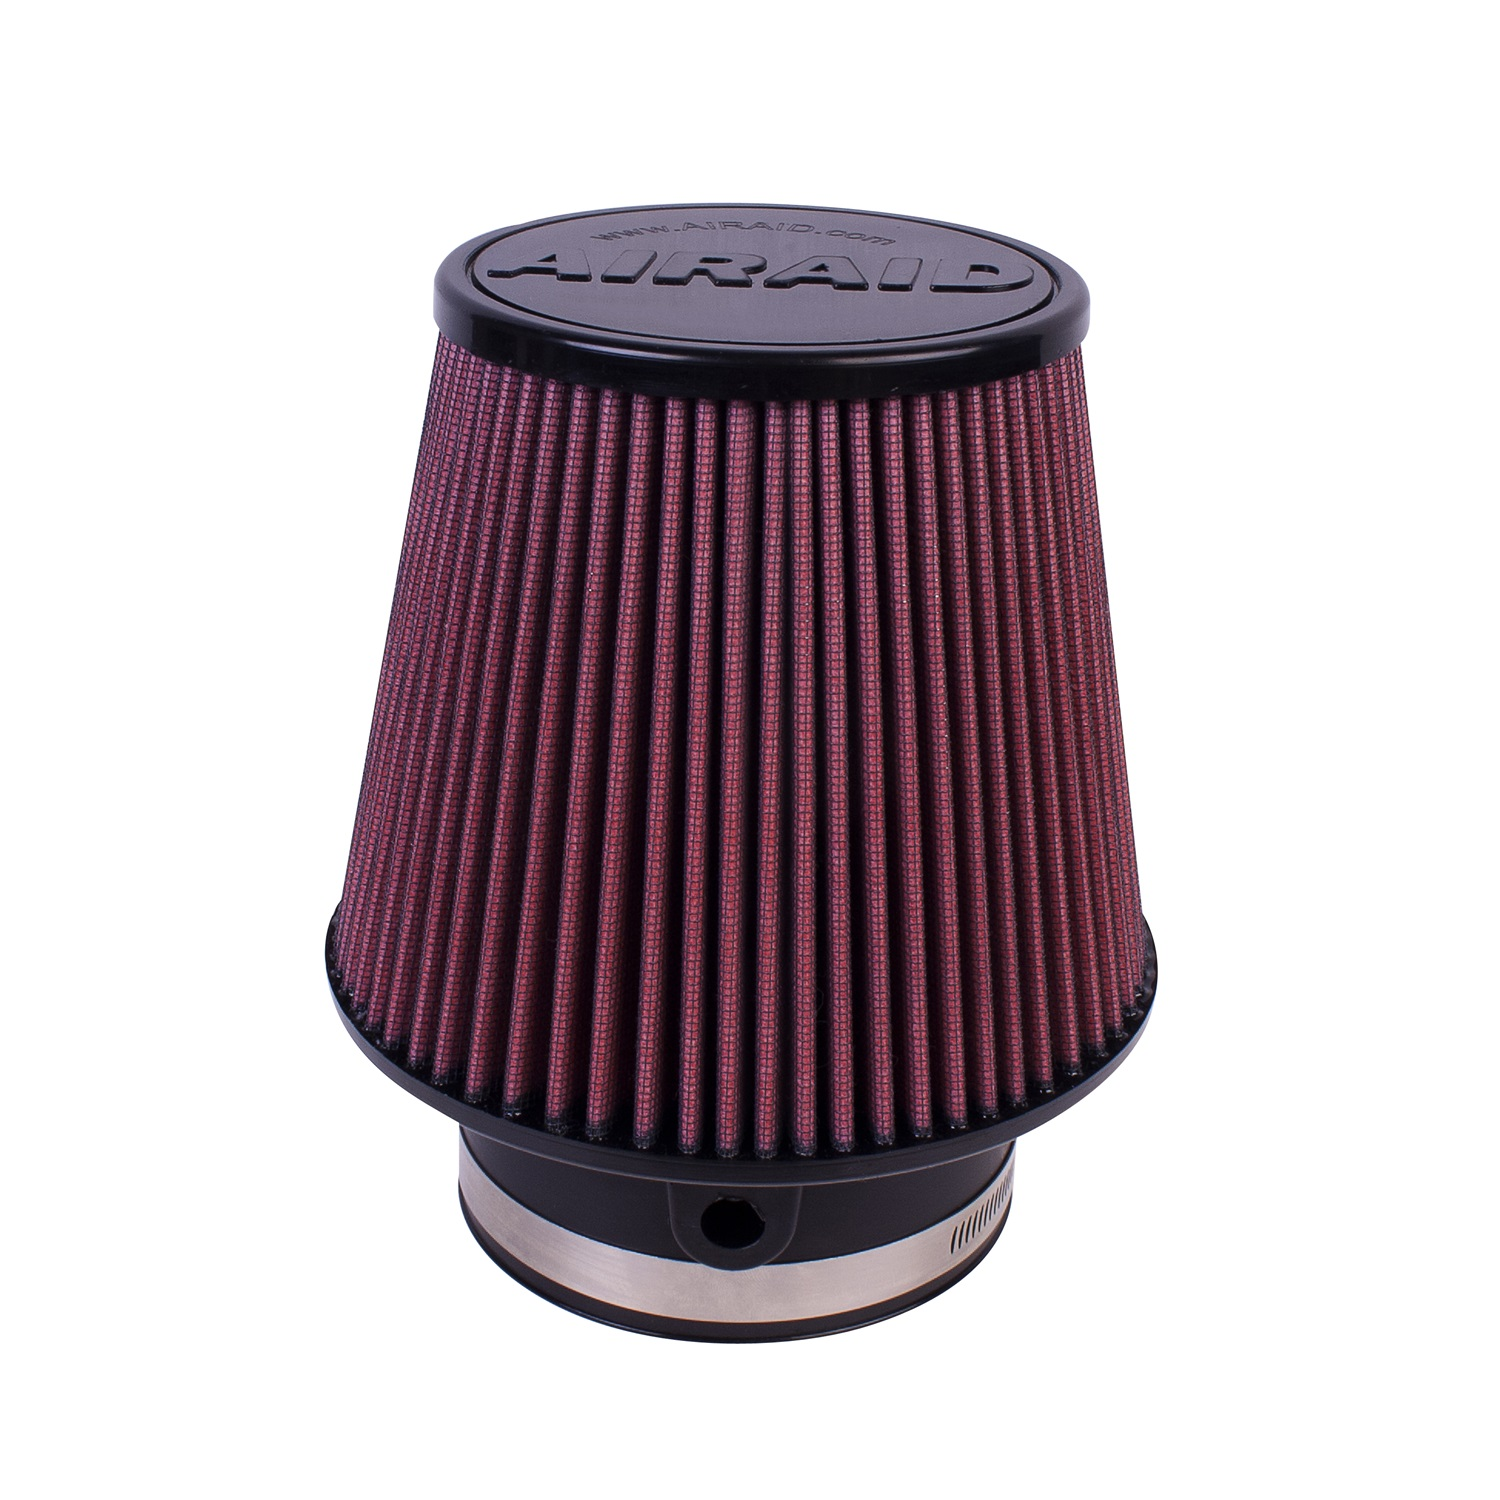 Airaid 700-581 Universal Air Filter 700-581